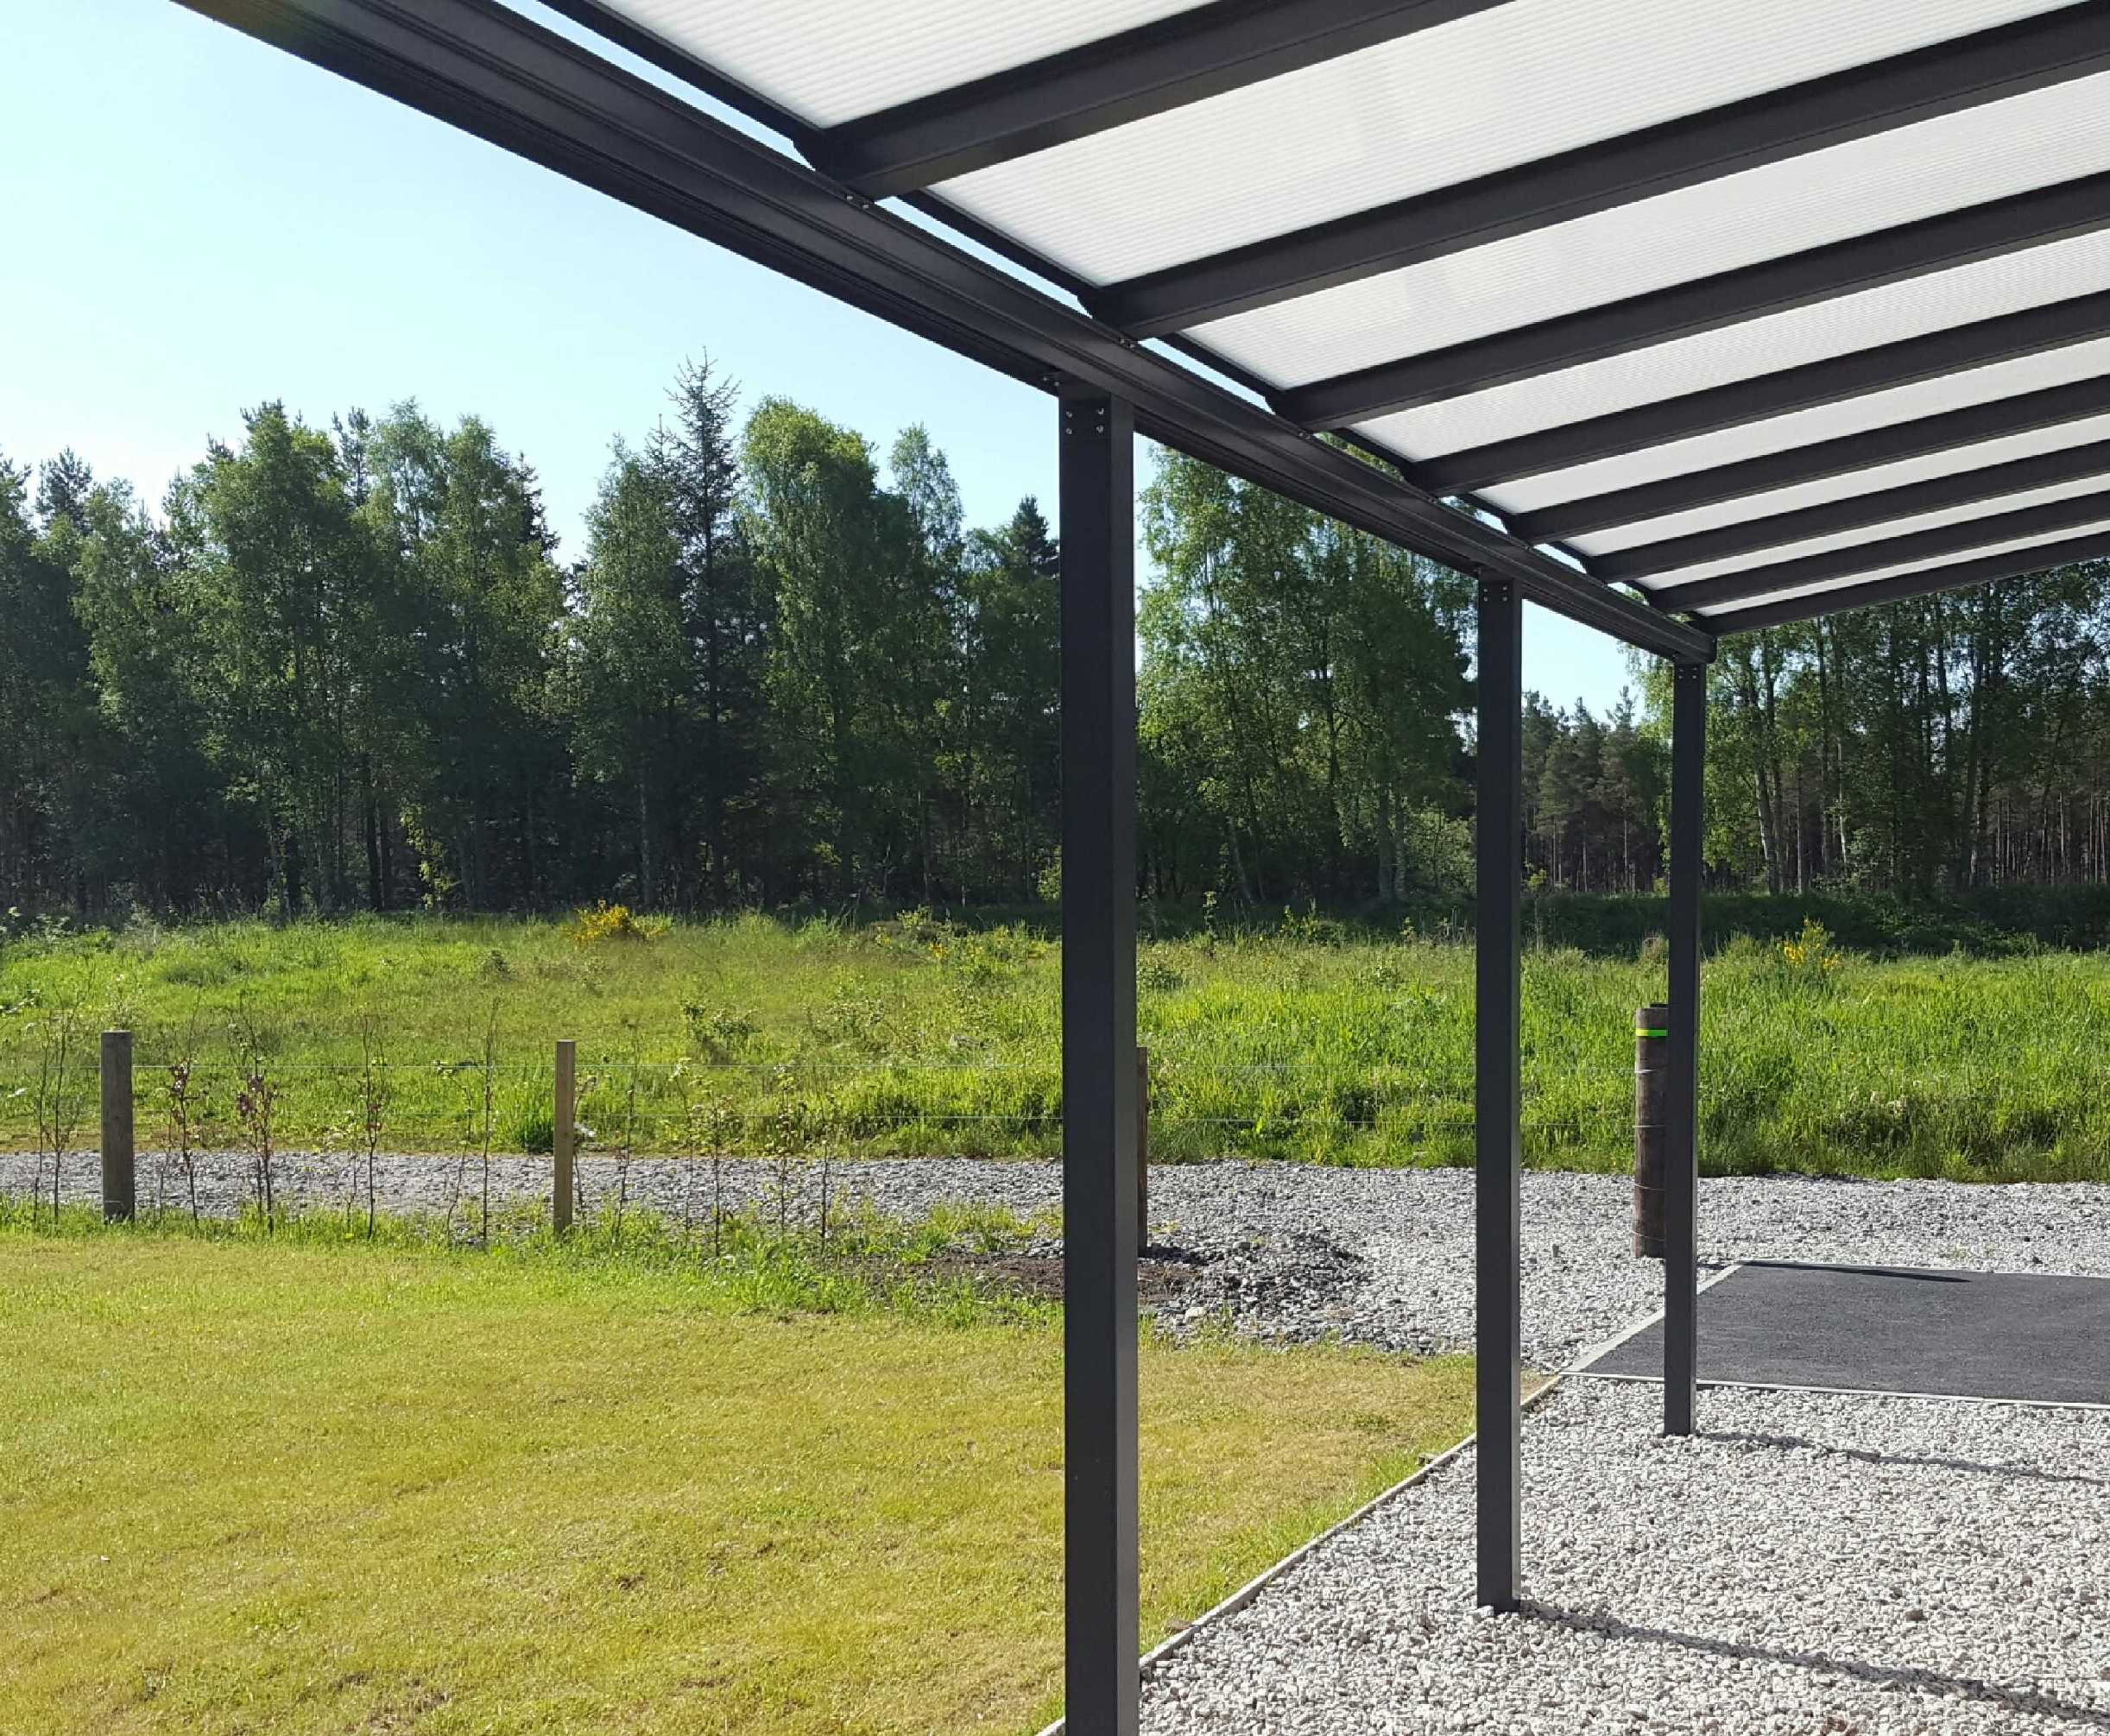 Omega Smart Lean-To Canopy, Anthracite Grey, 16mm Polycarbonate Glazing - 11.8m (W) x 4.5m (P), (5) Supporting Posts